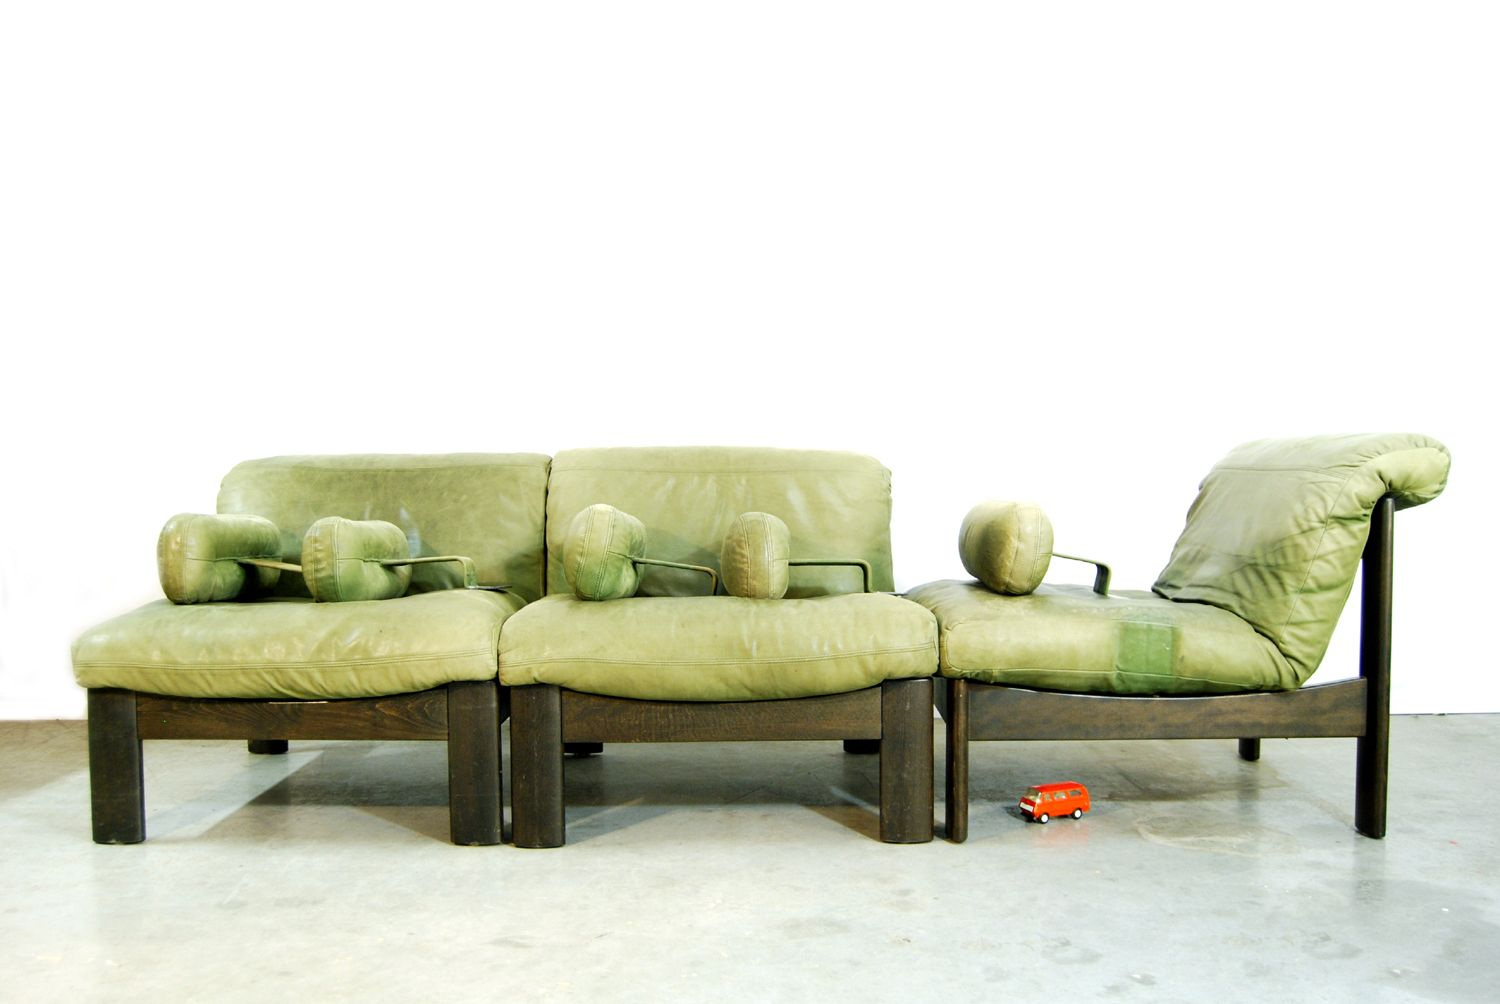 Vintage Green Leather Living Room Set